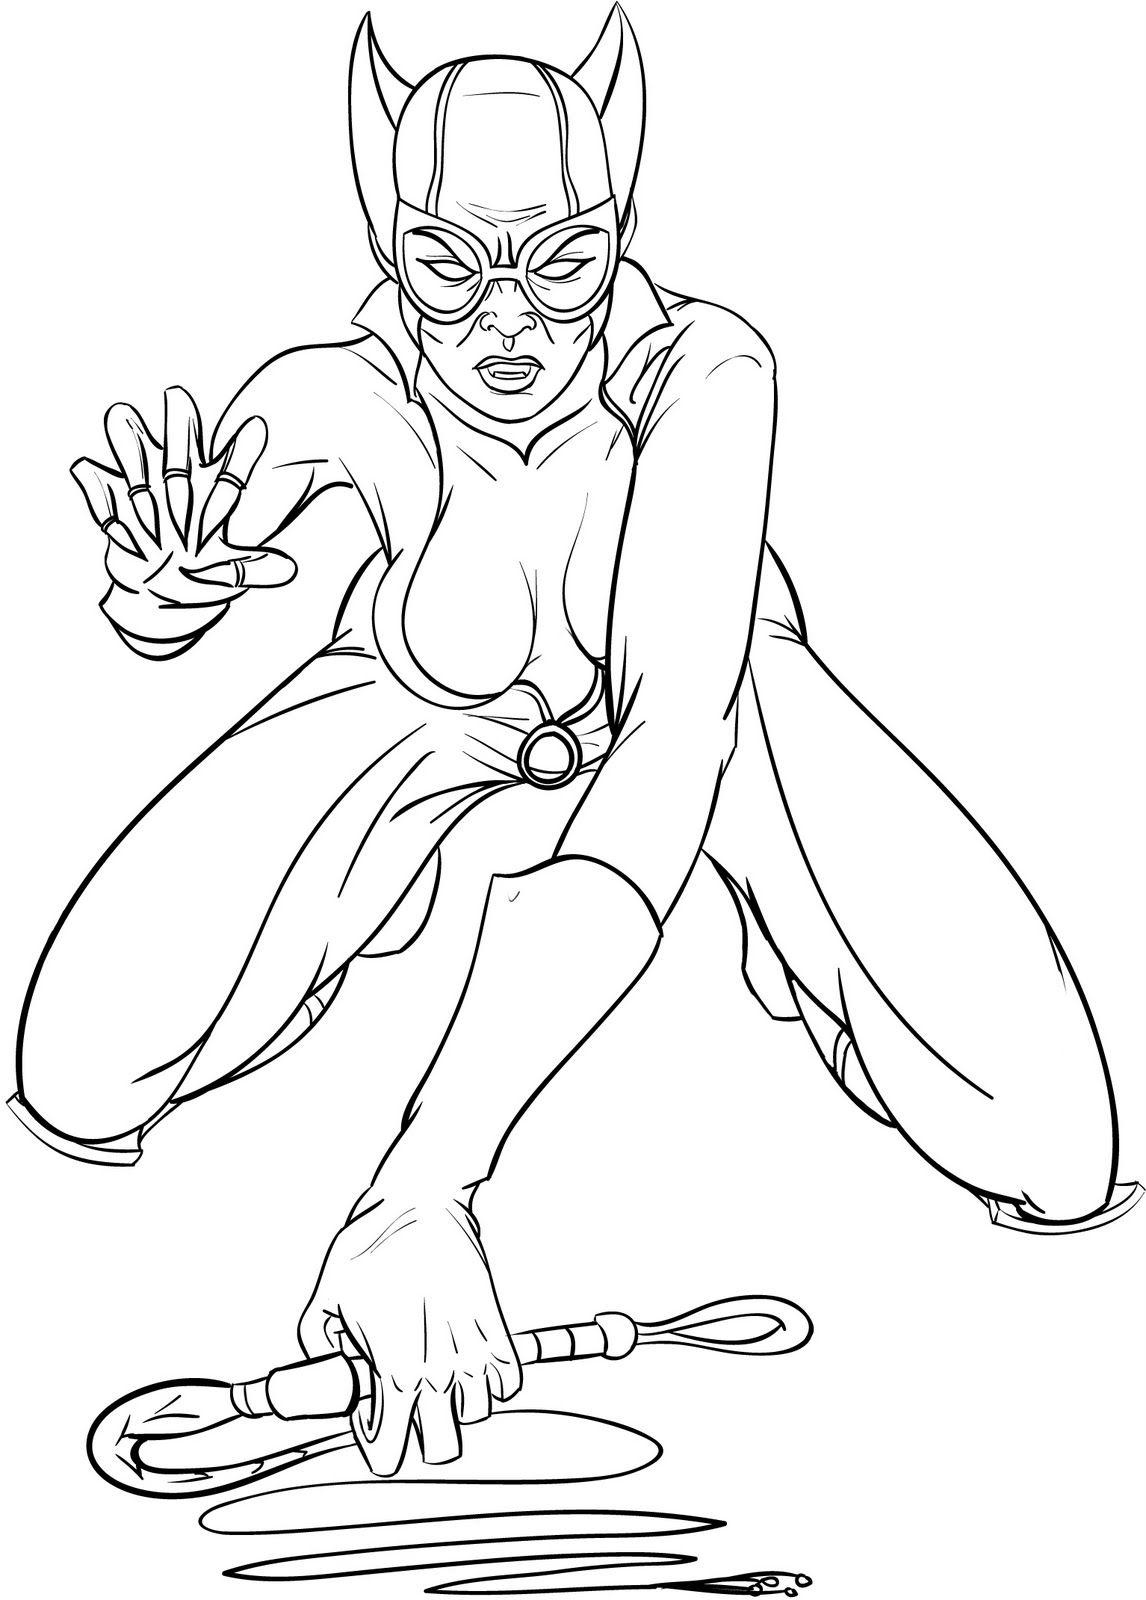 Catwoman Coloring Picture For Kids Coloring Pages